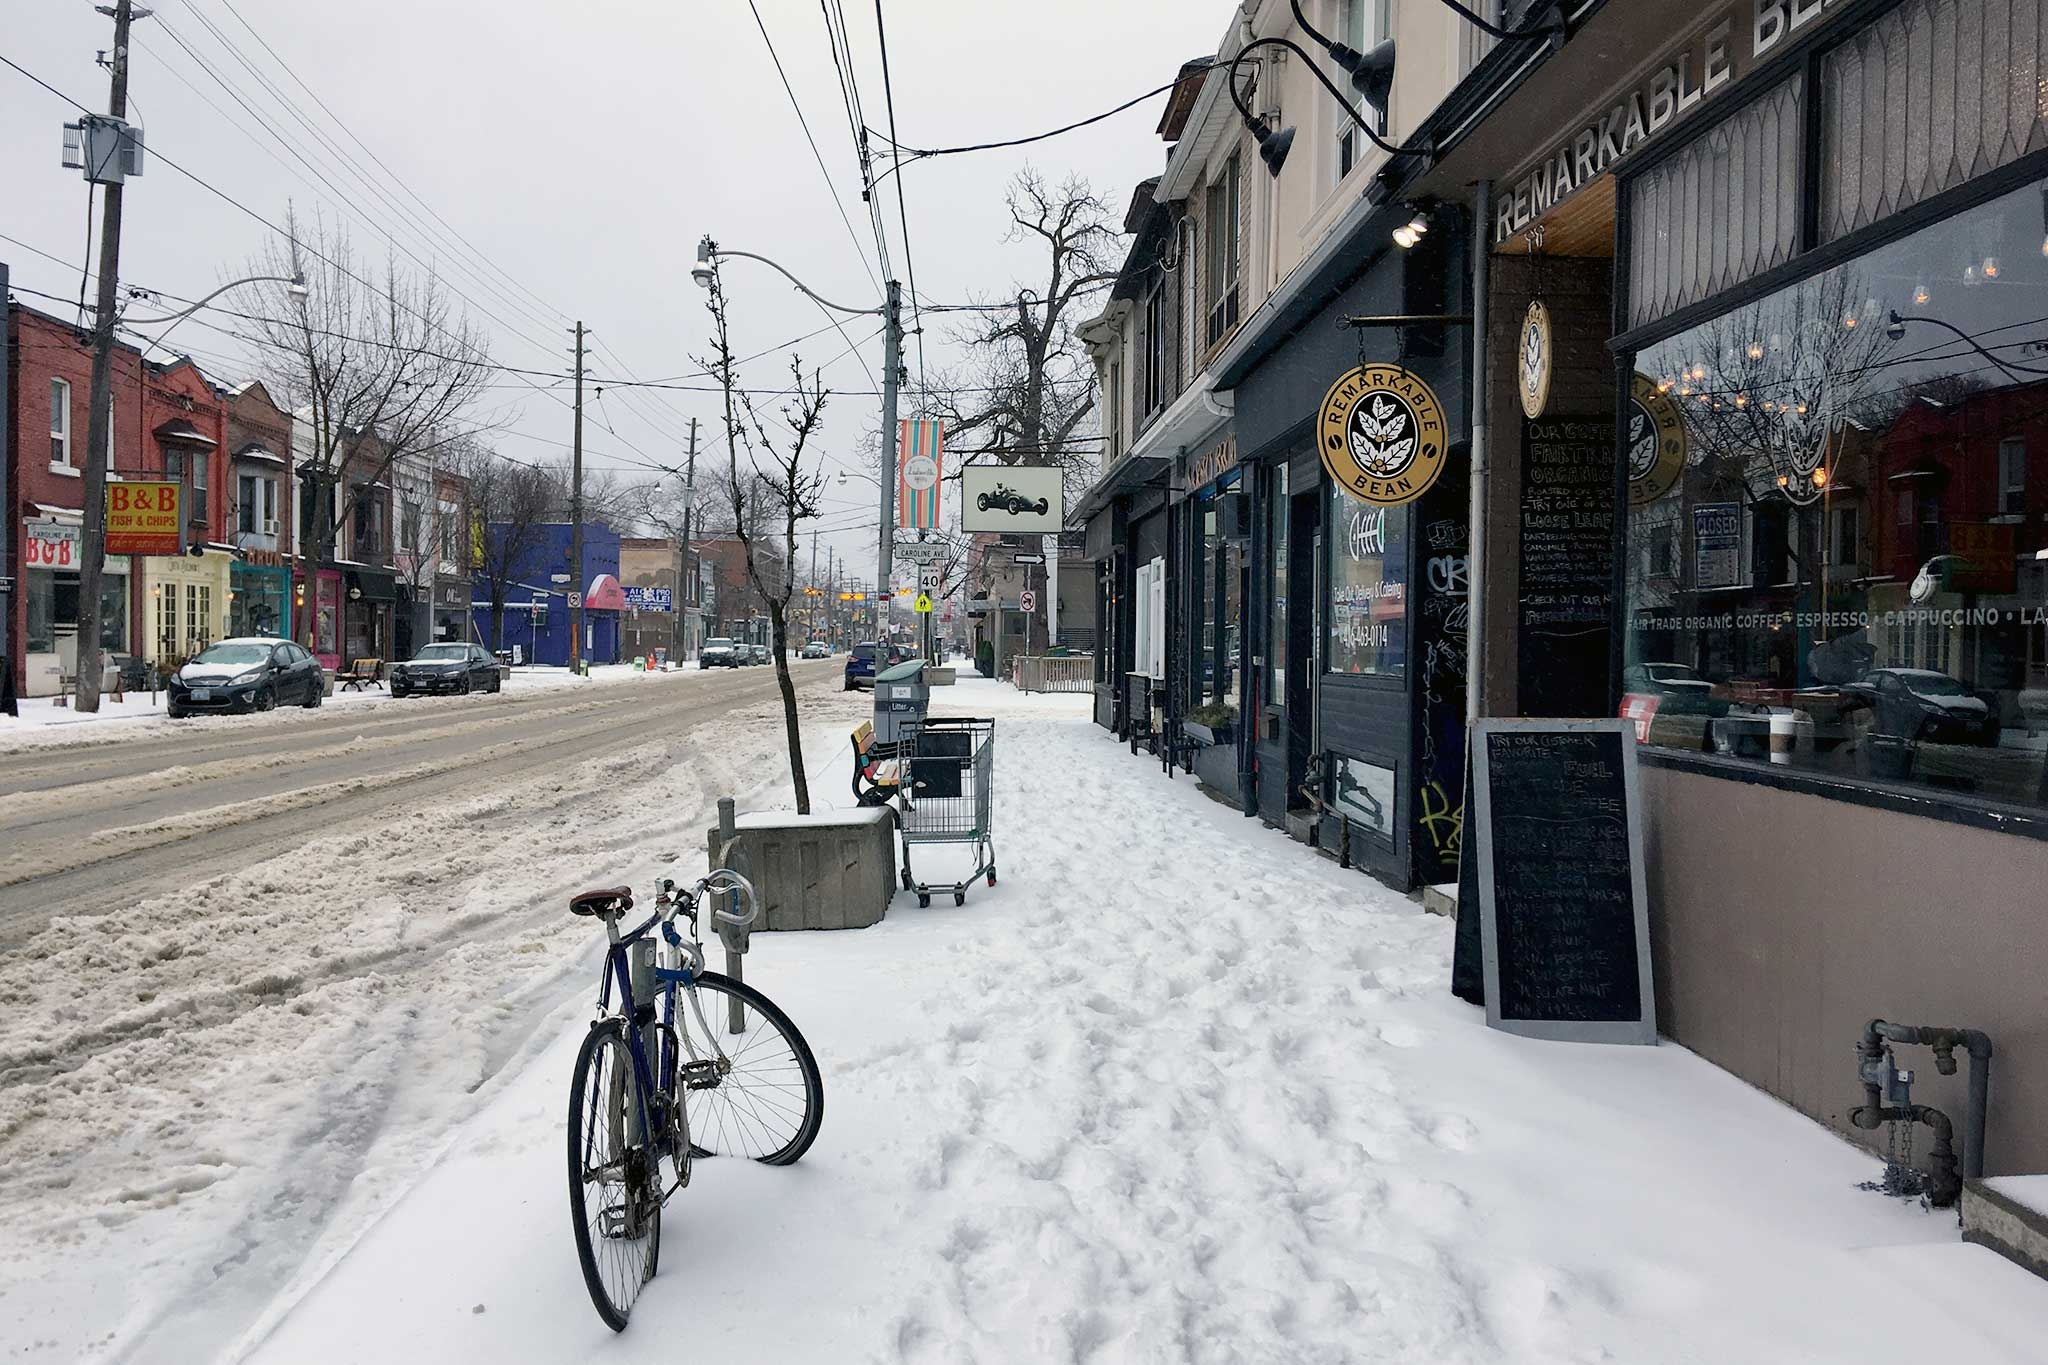 Weather Toronto: Toronto Battered By Snow And Ice As City Reverts To Winter